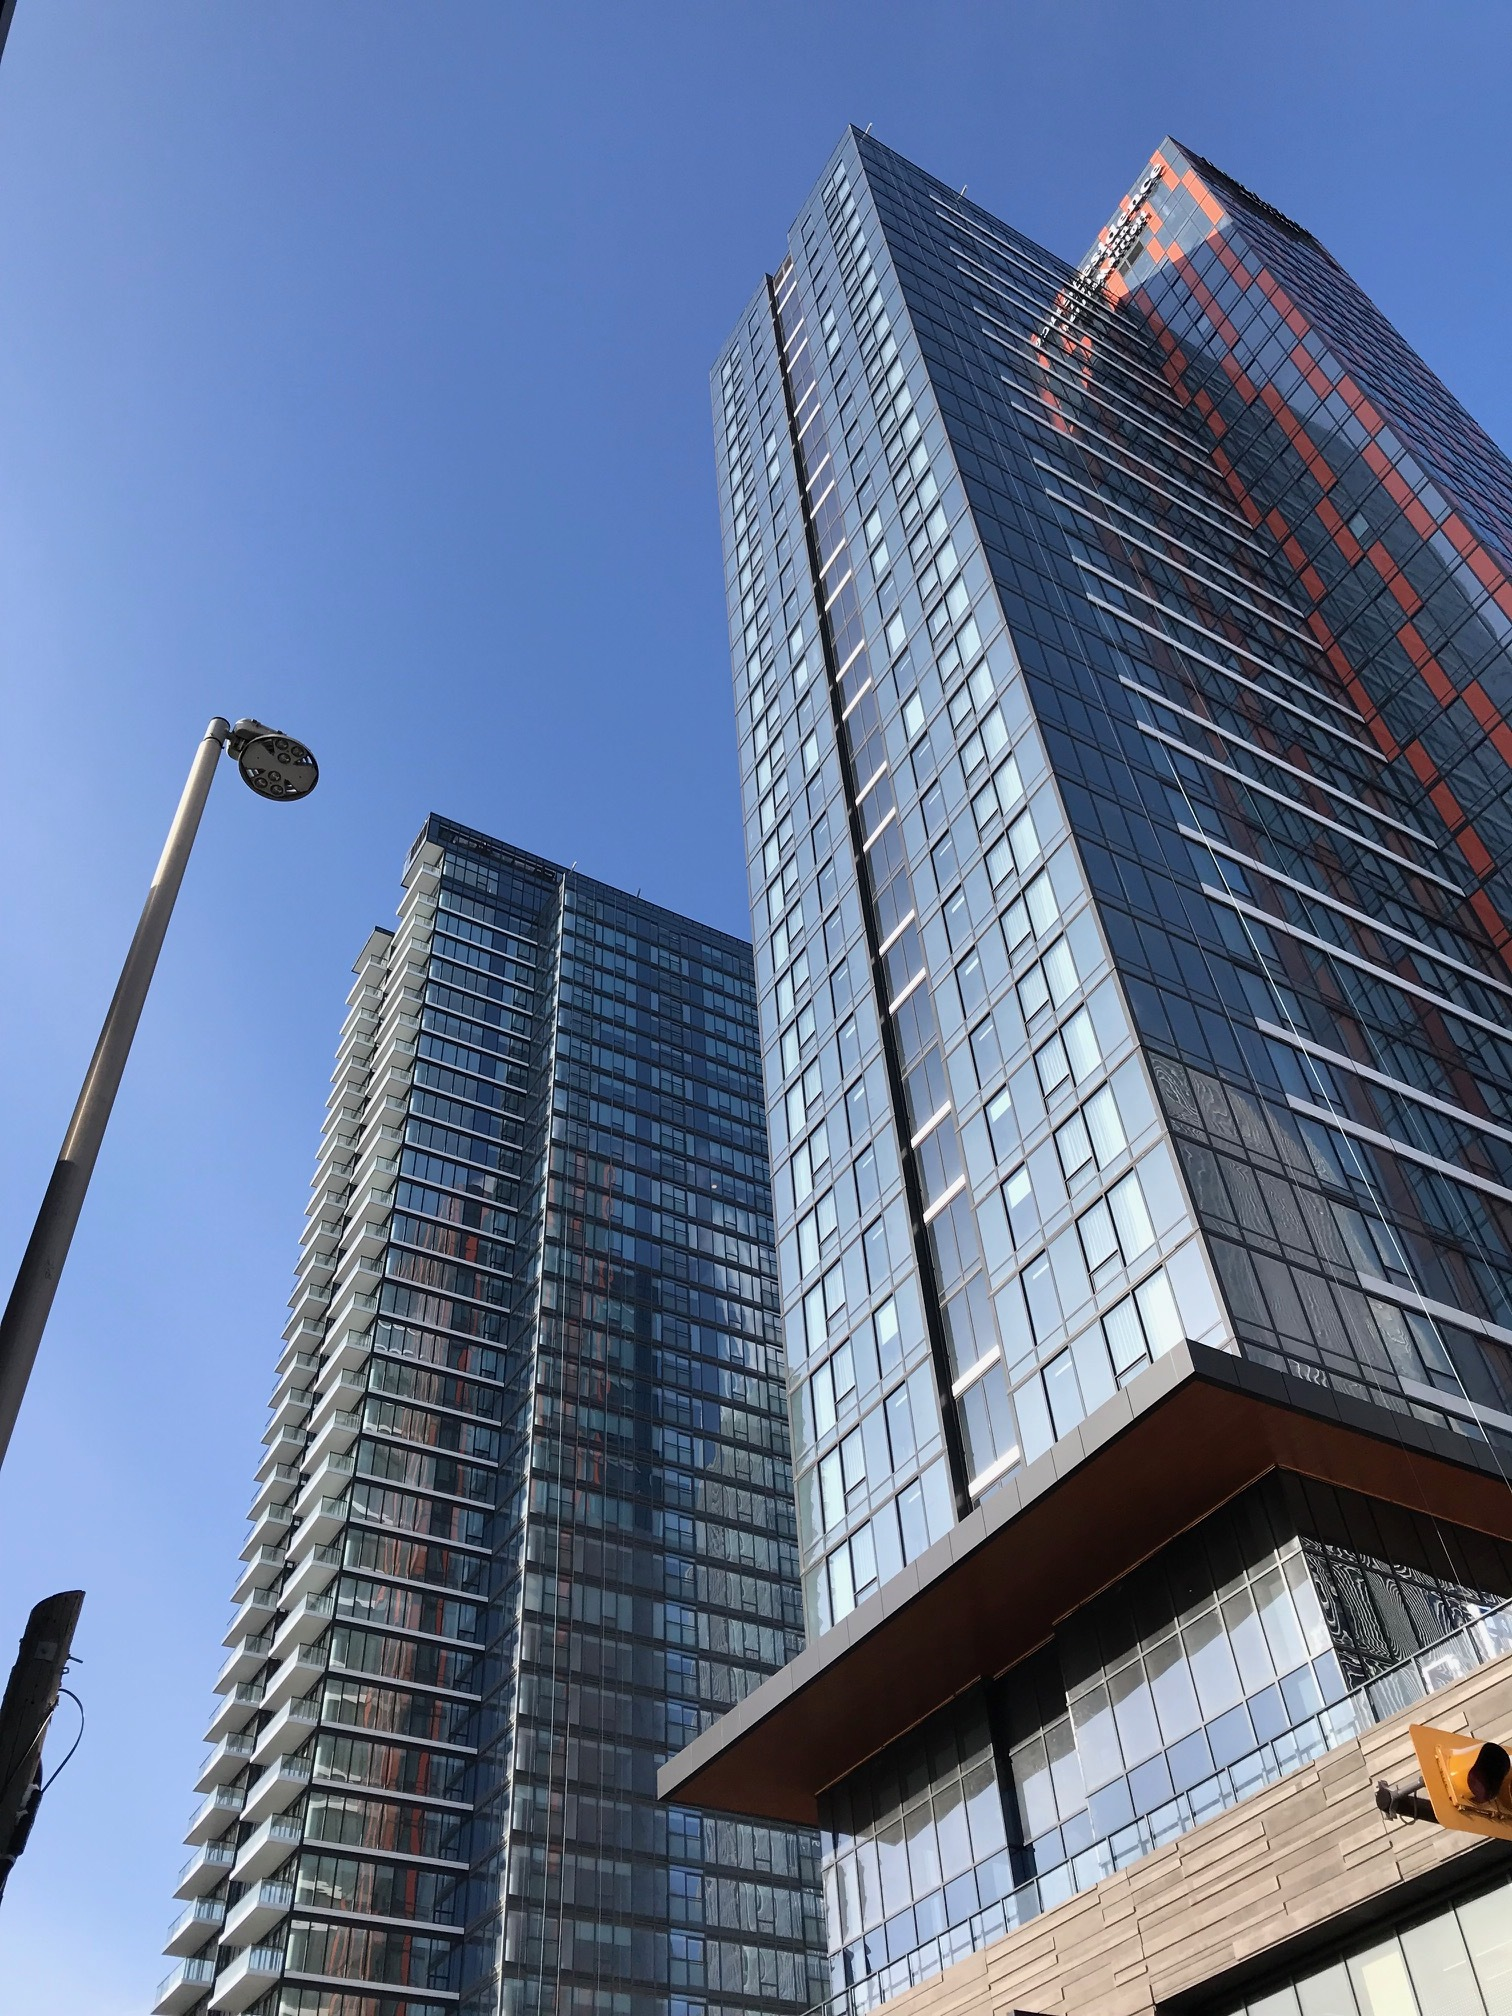 Calgary's new Marriott Residence Inn and SODO residential towers on 10th Ave at 5th Street SW.